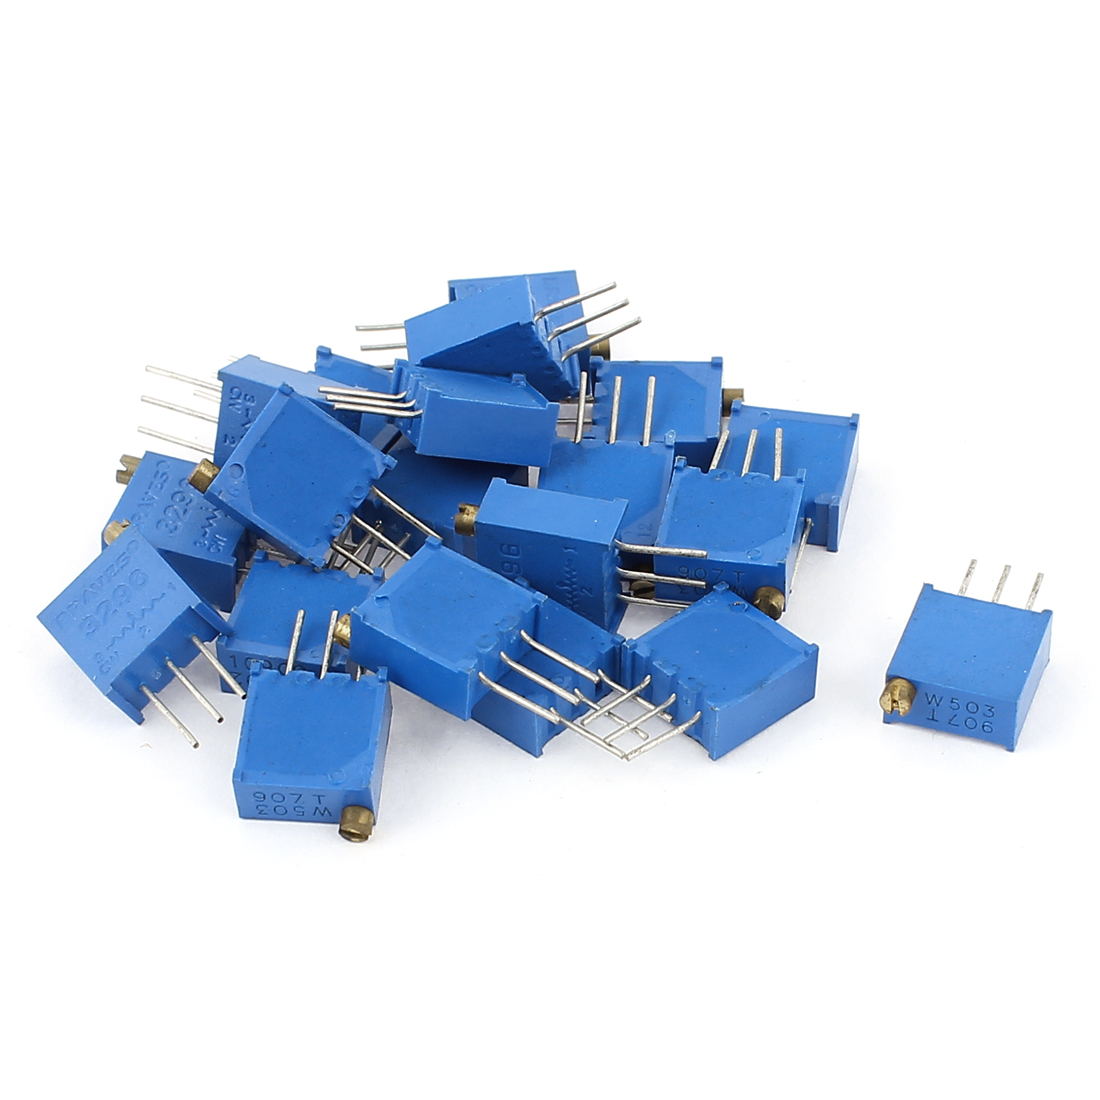 20Pcs 3296W-202 3296W-503 Resistor Trim Pot Potentiometer Trimmer